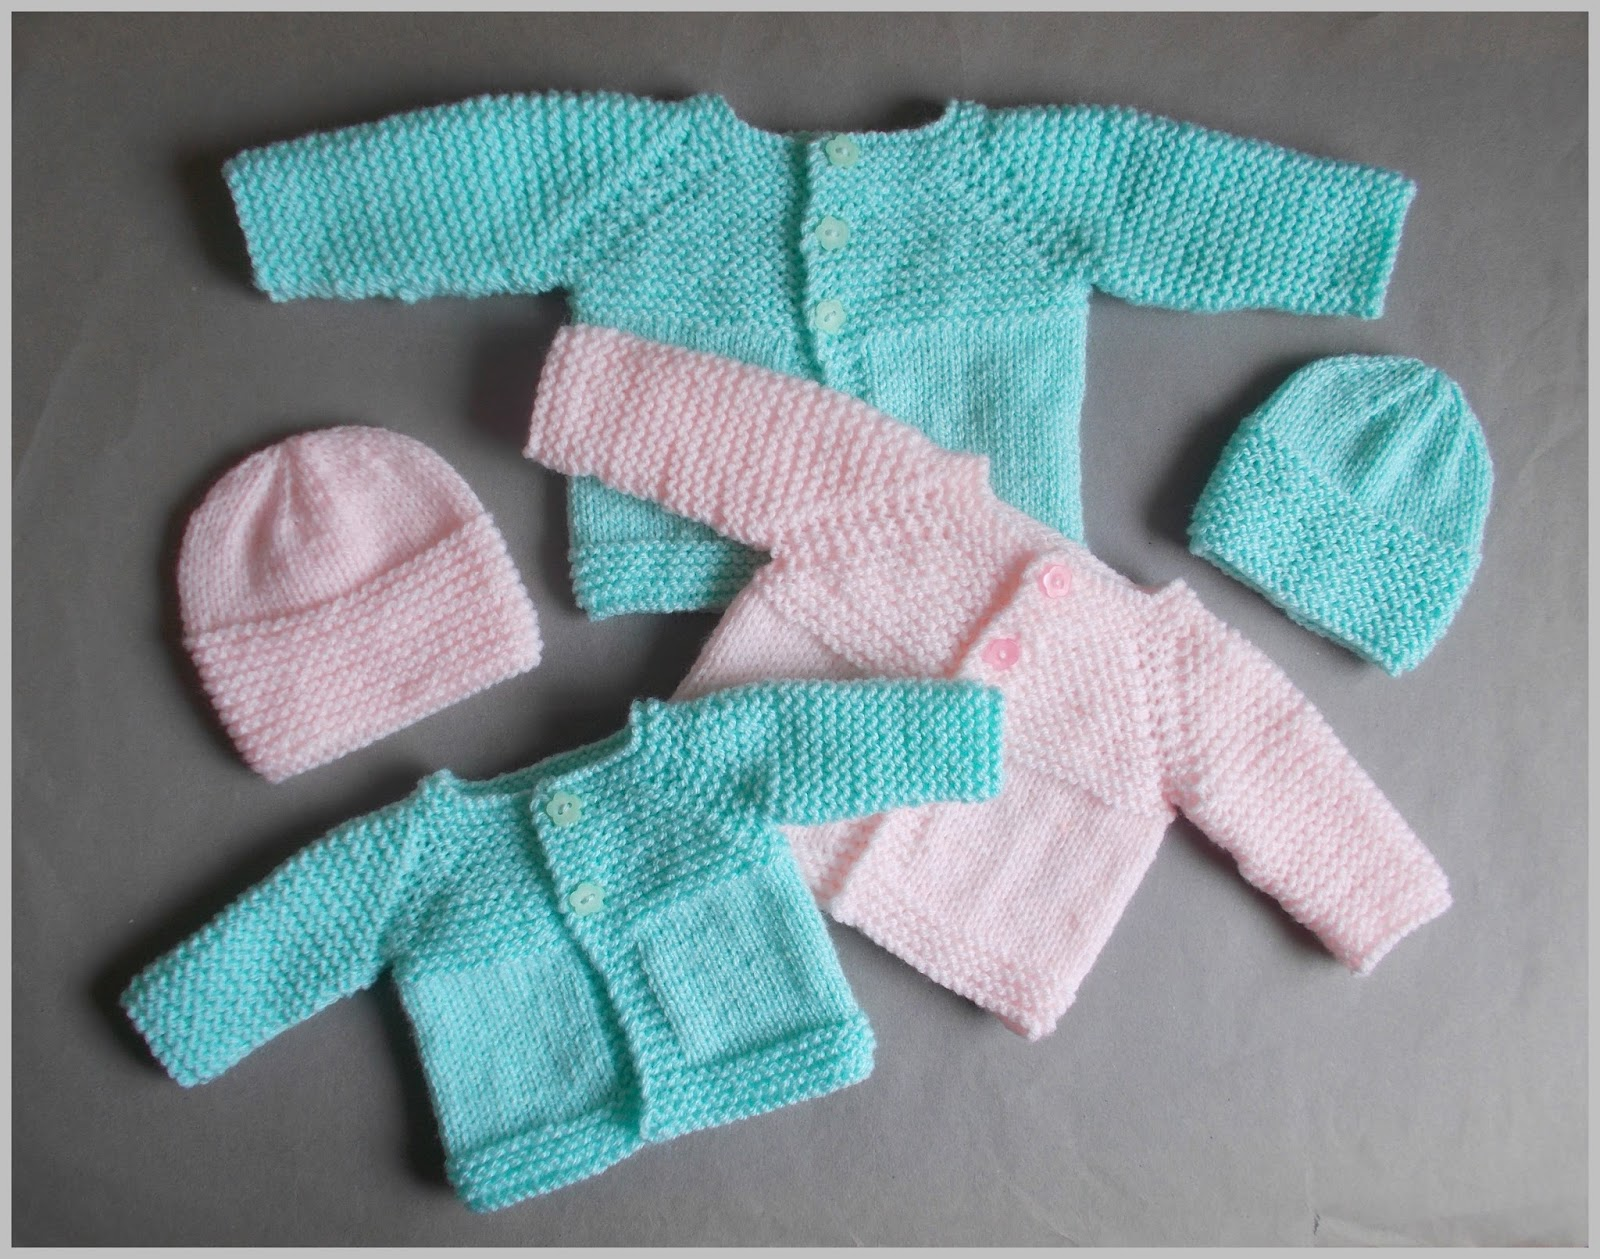 Knitting Patterns For Very Premature Babies : mariannas lazy daisy days: Little Babbity - Premature Baby Set